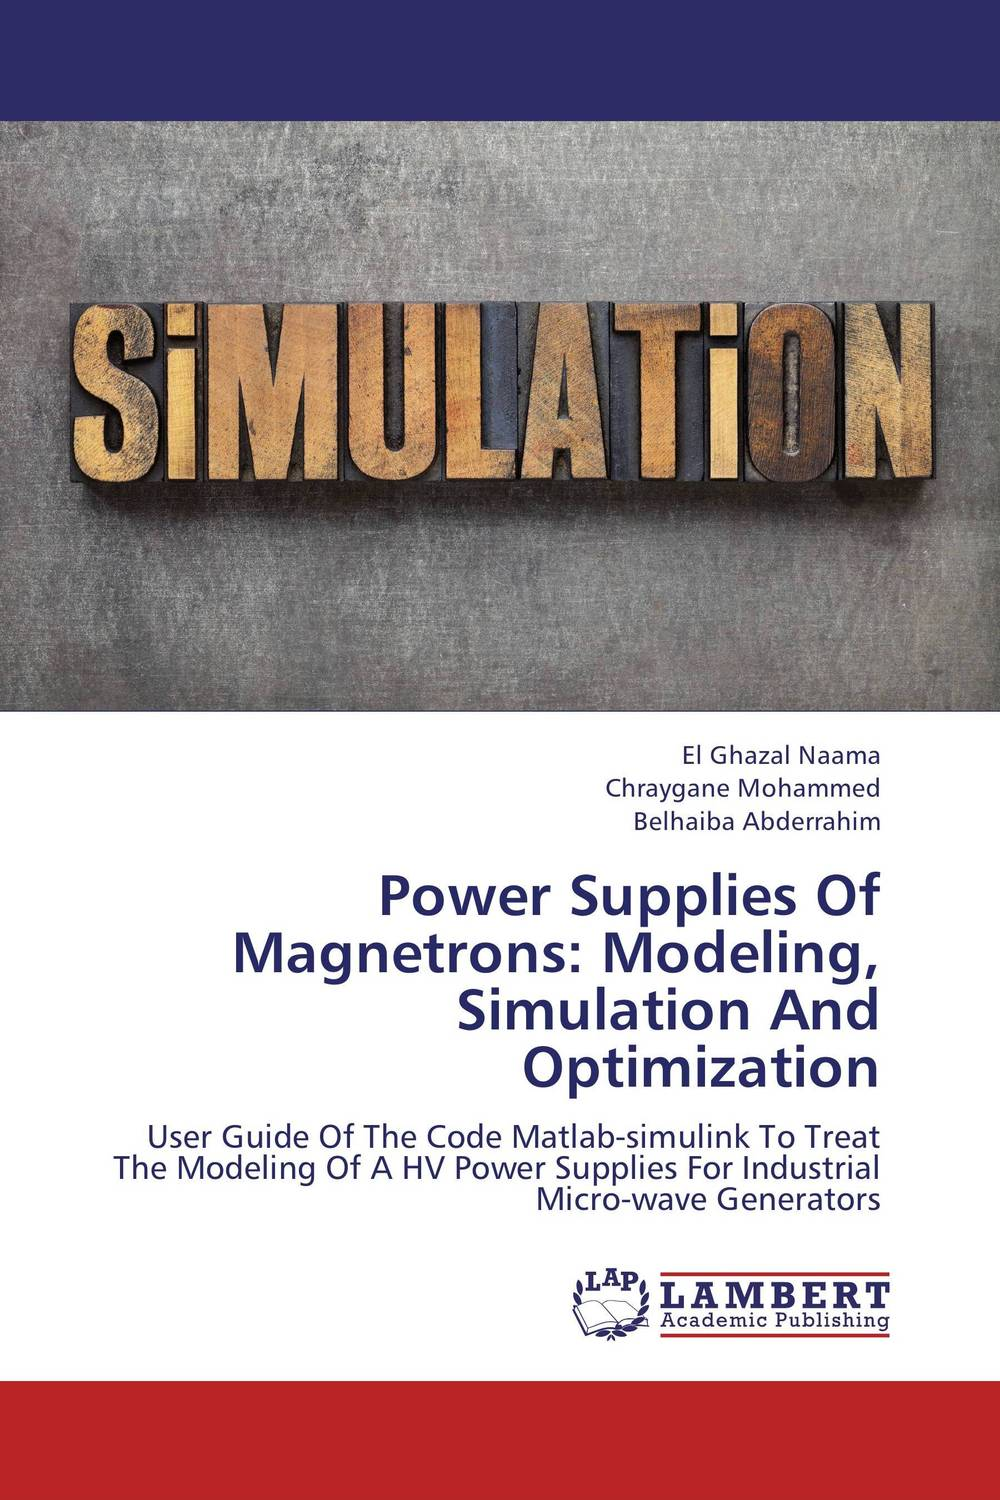 Power Supplies Of Magnetrons: Modeling, Simulation And Optimization